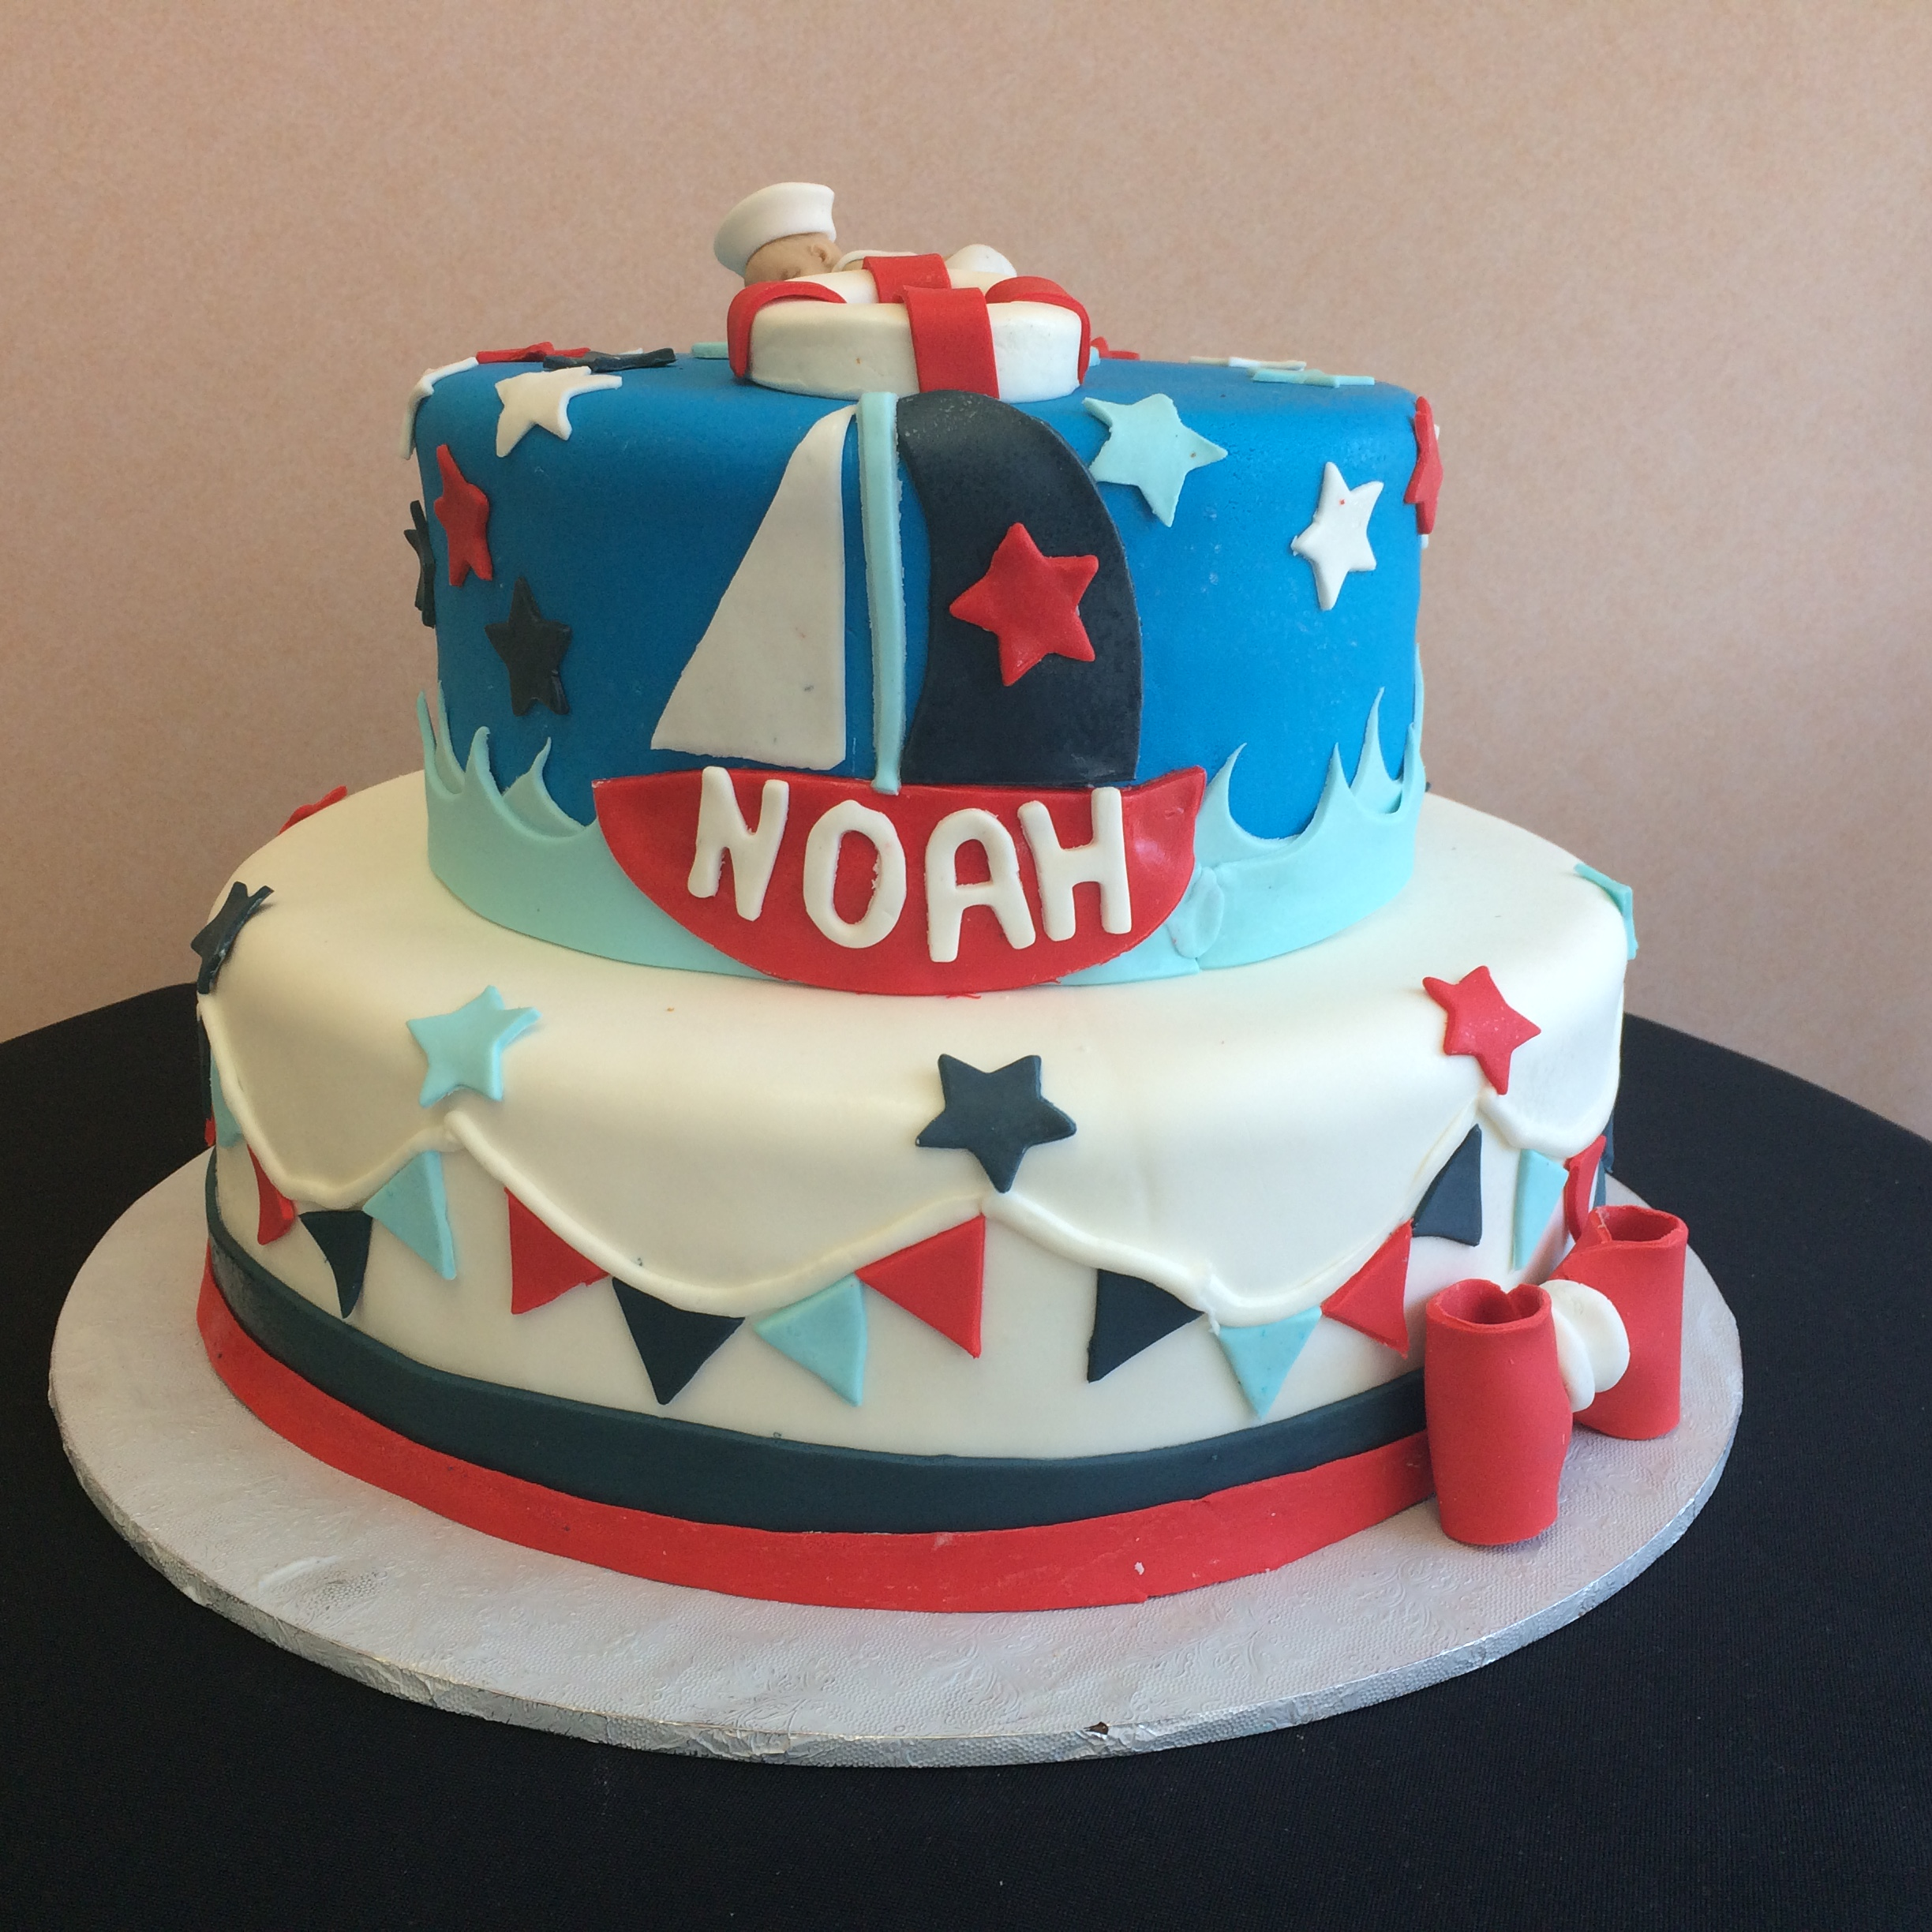 Rolled Fondant. Colored Rolled Fondant. Banding & Bow. Pennants Stars. Waves. Boat Life Preserver & Baby.jpg